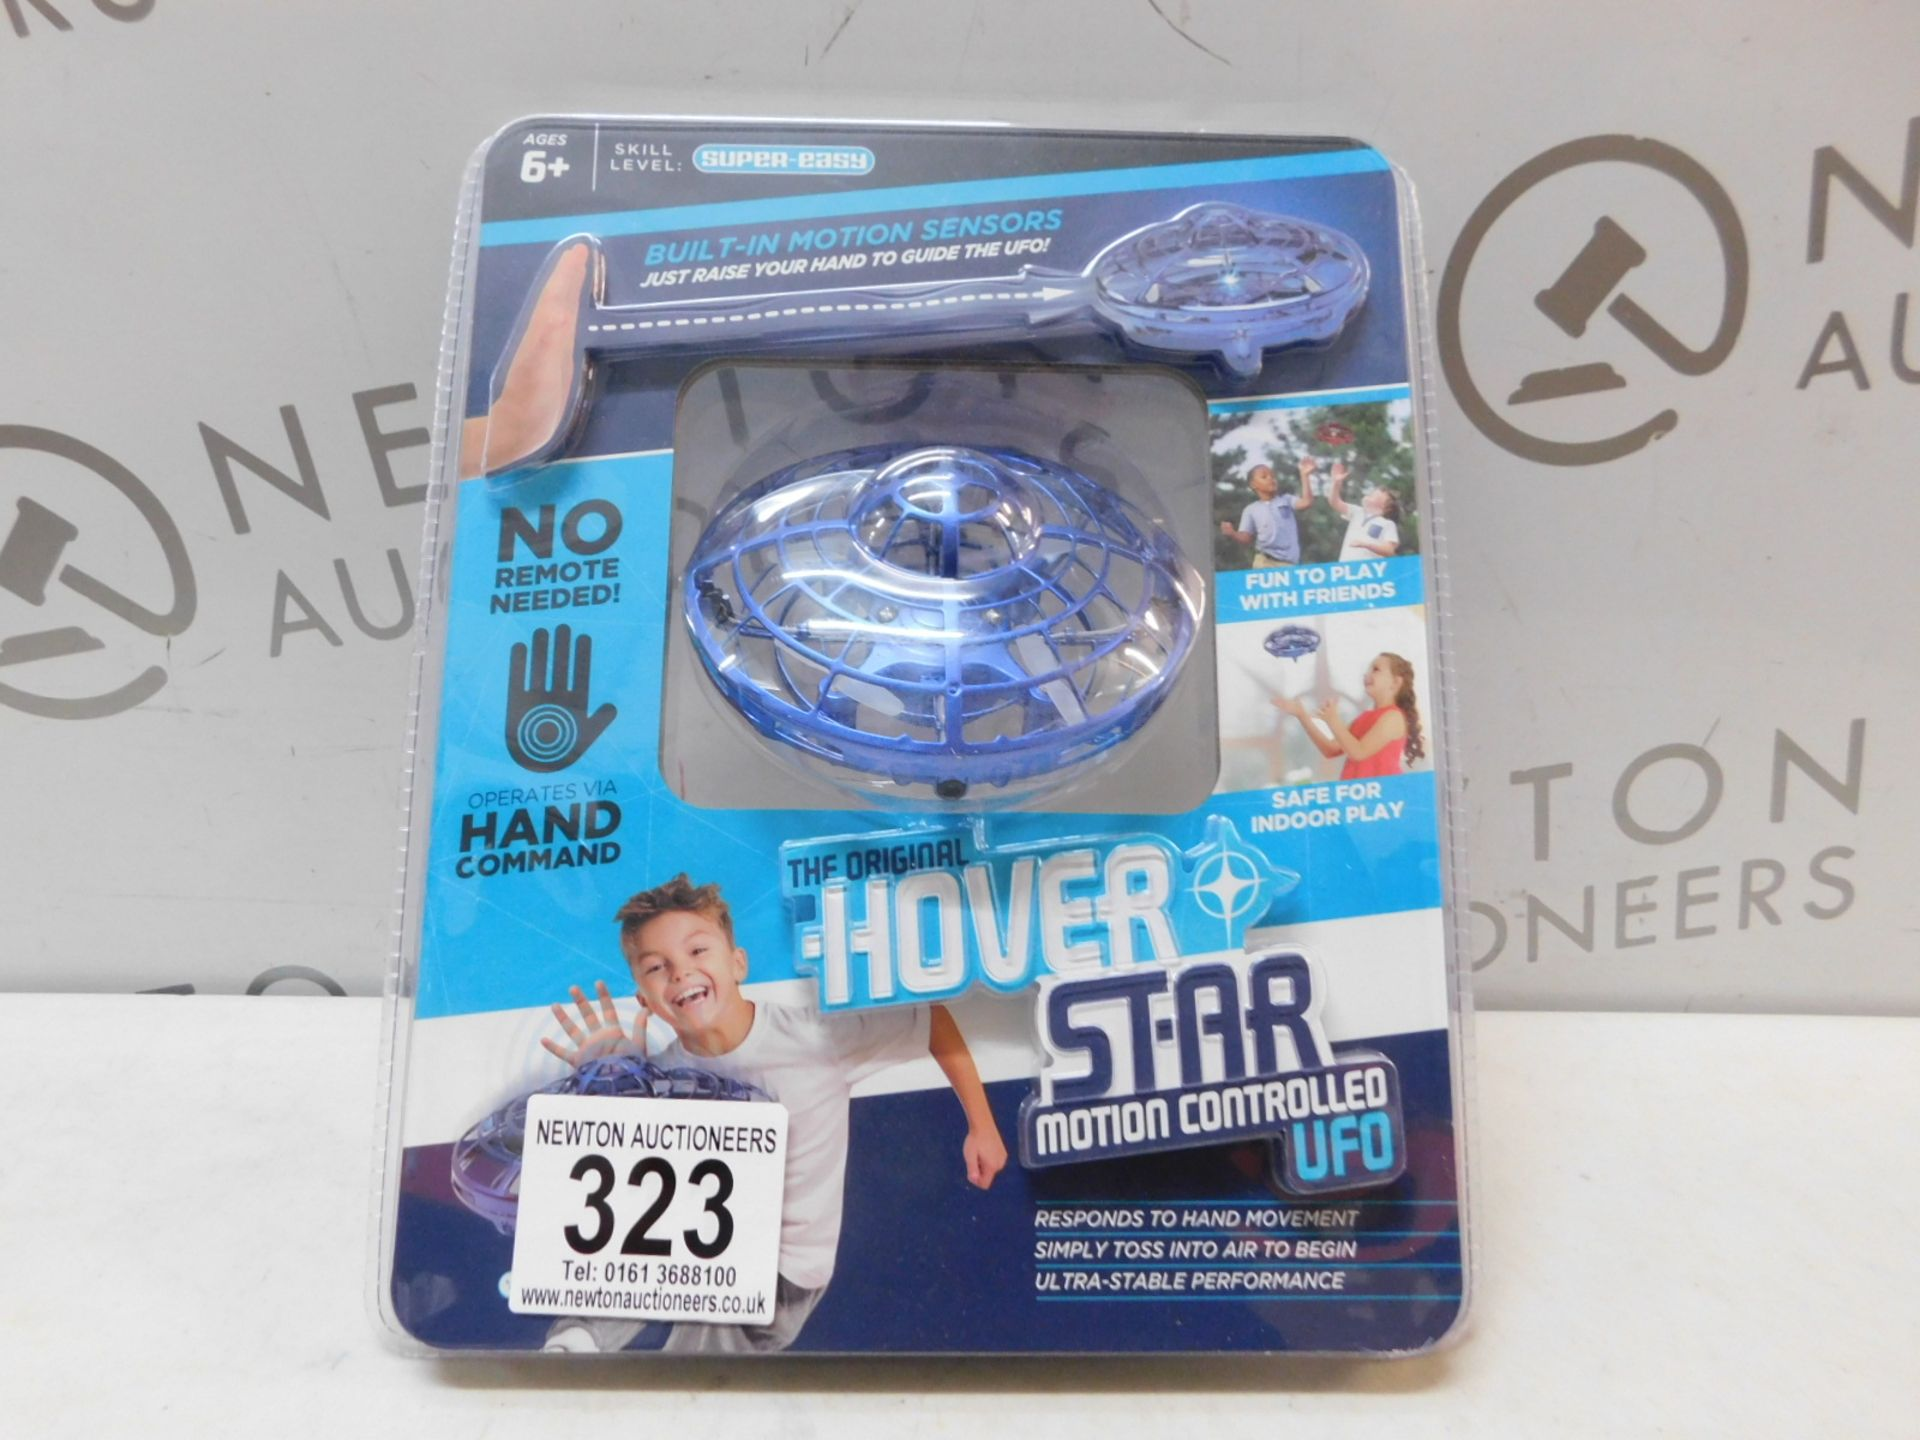 Lot 323 - 1 PACK OF THE ORIGNAL HOVER STAR MOTION CONTROLLED UFO RRP £39.99